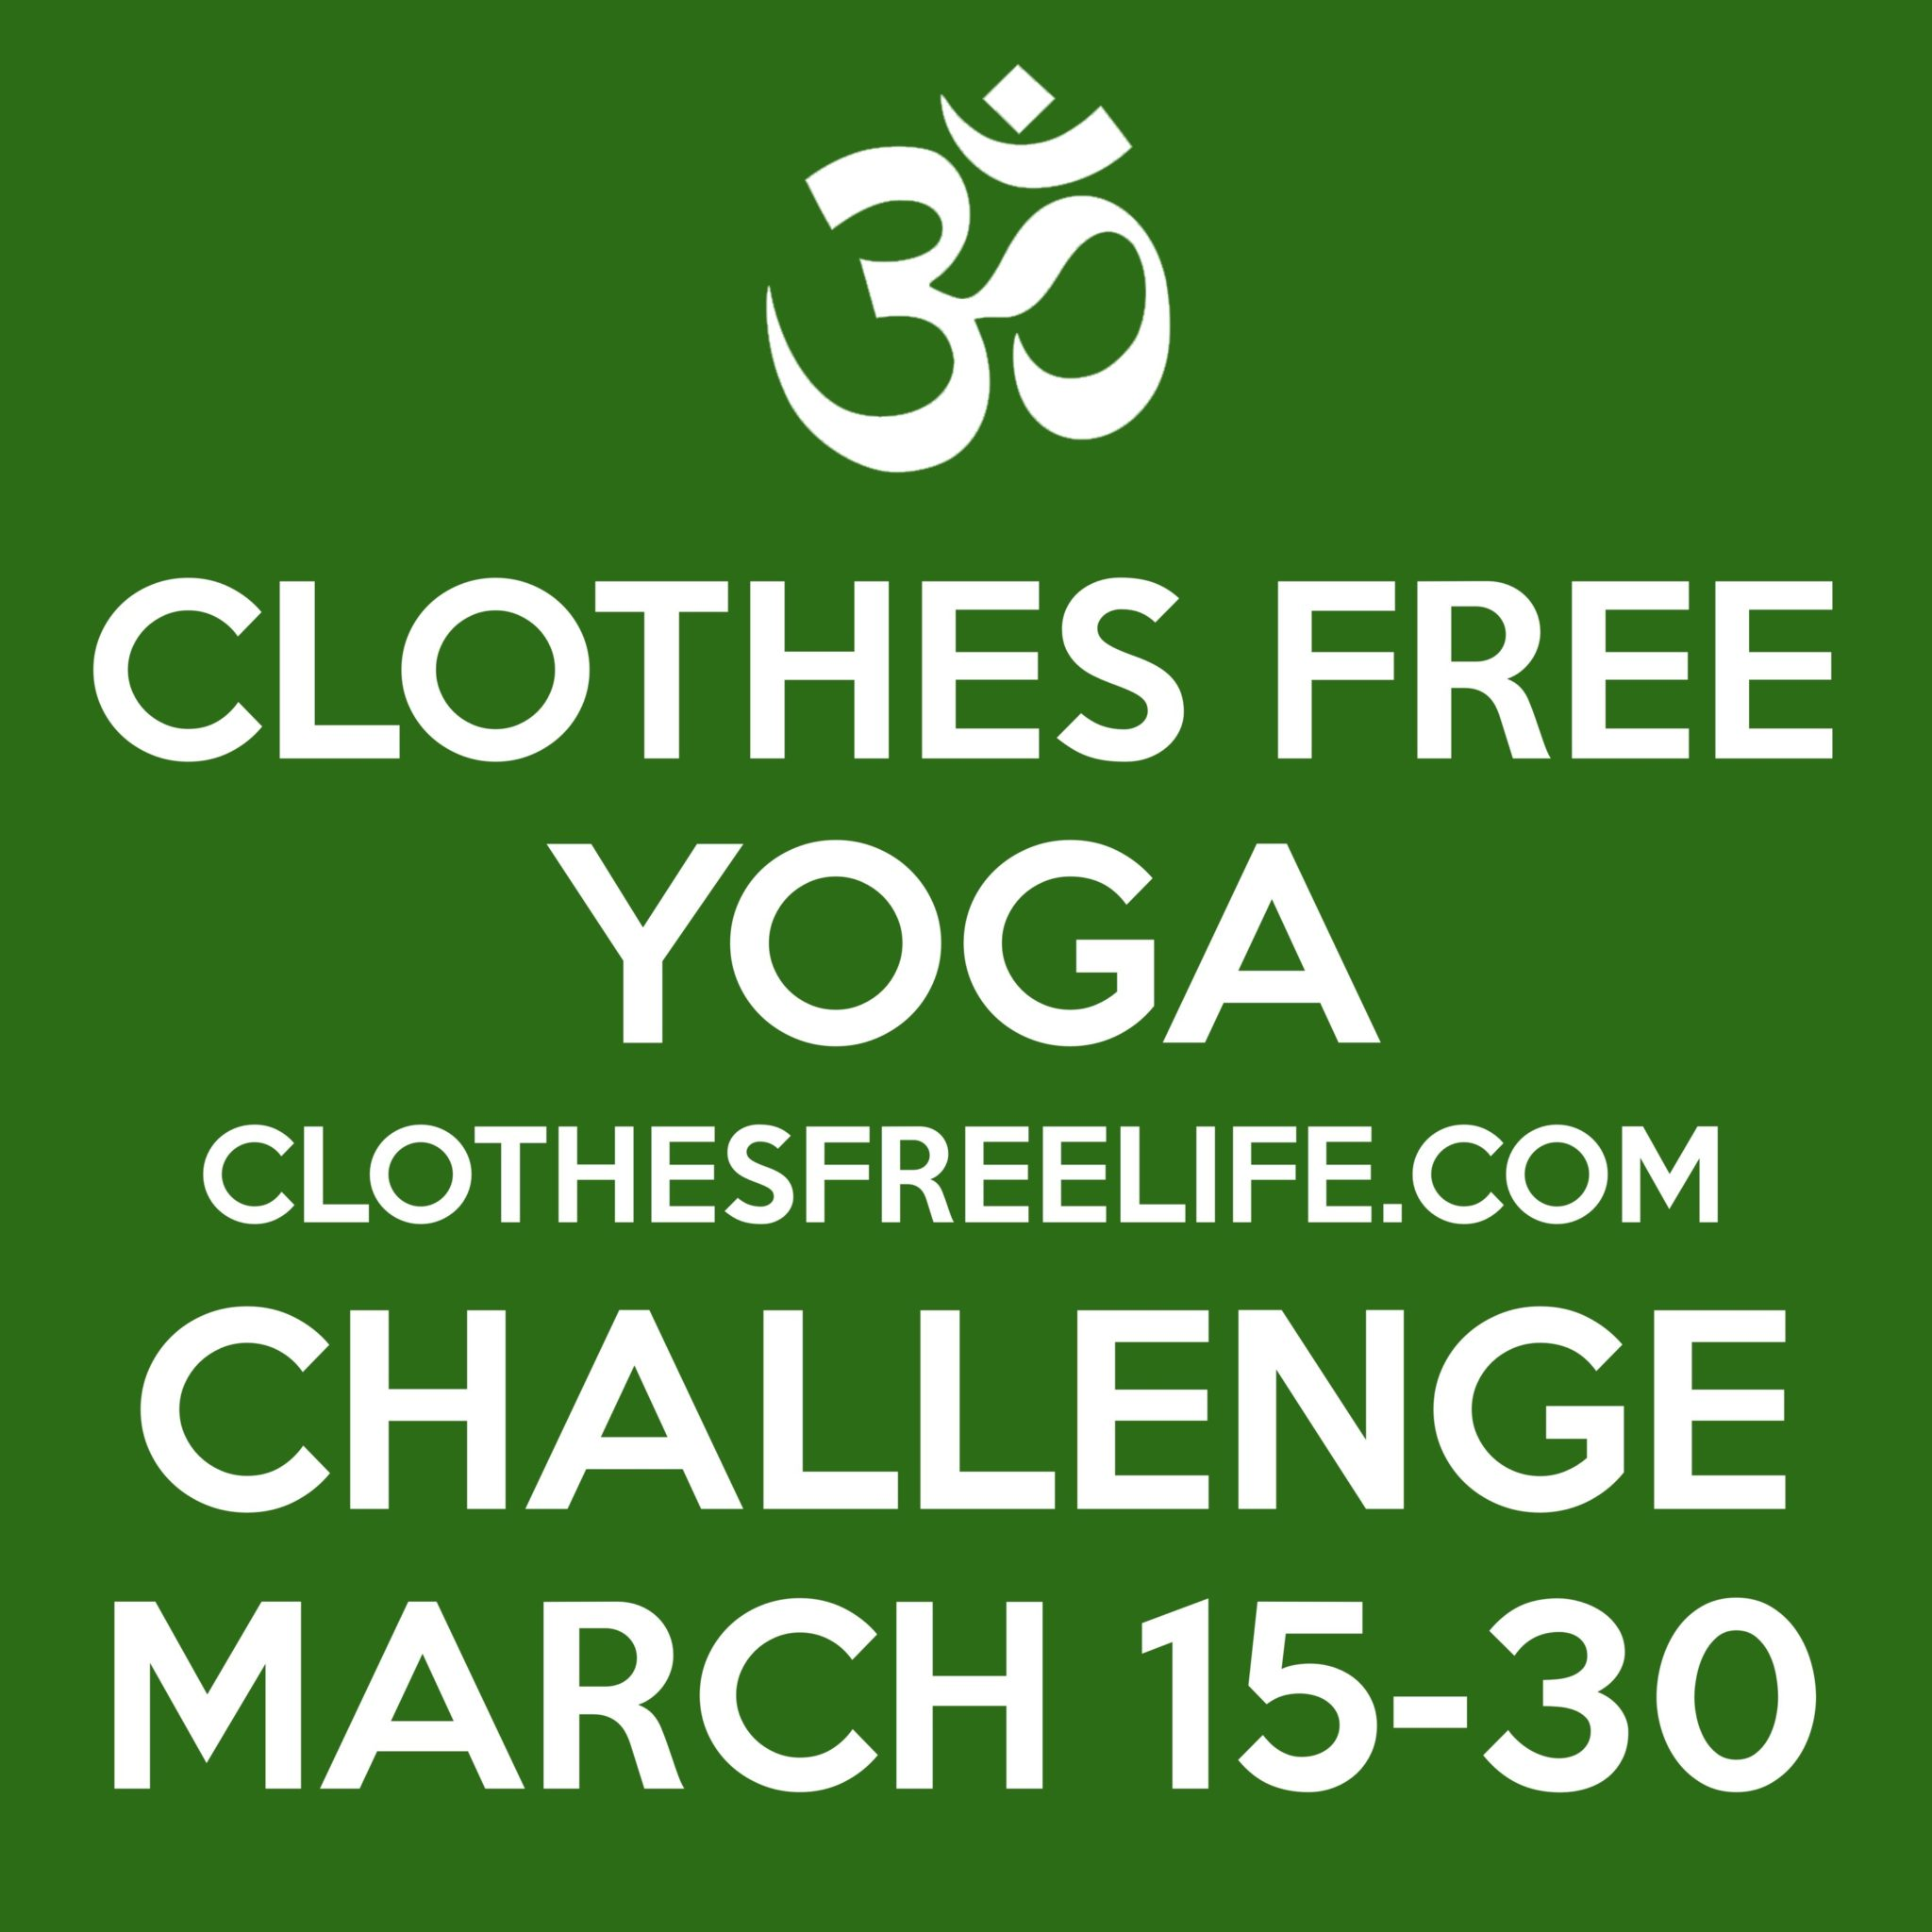 Clothes free yoga challenge coming soon